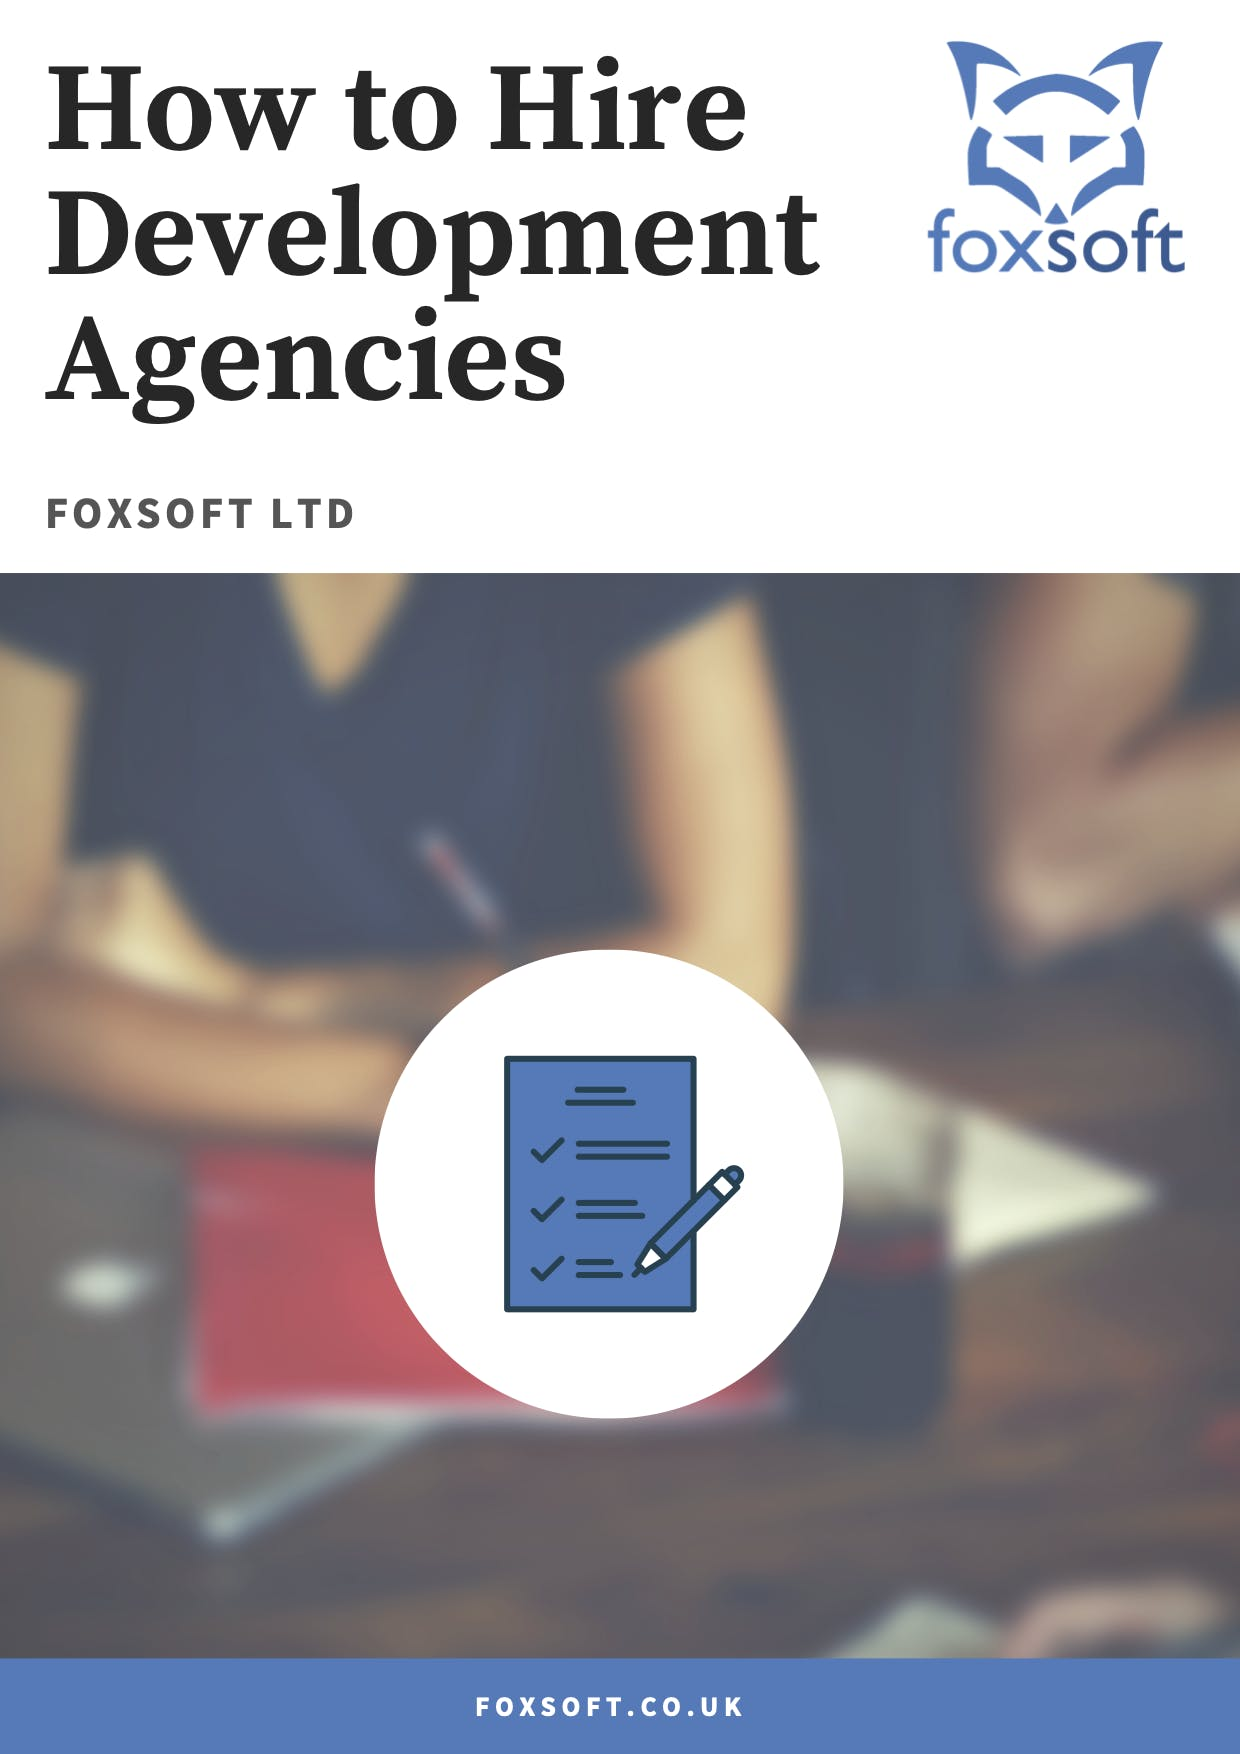 How to Hire Development Agencies Guide